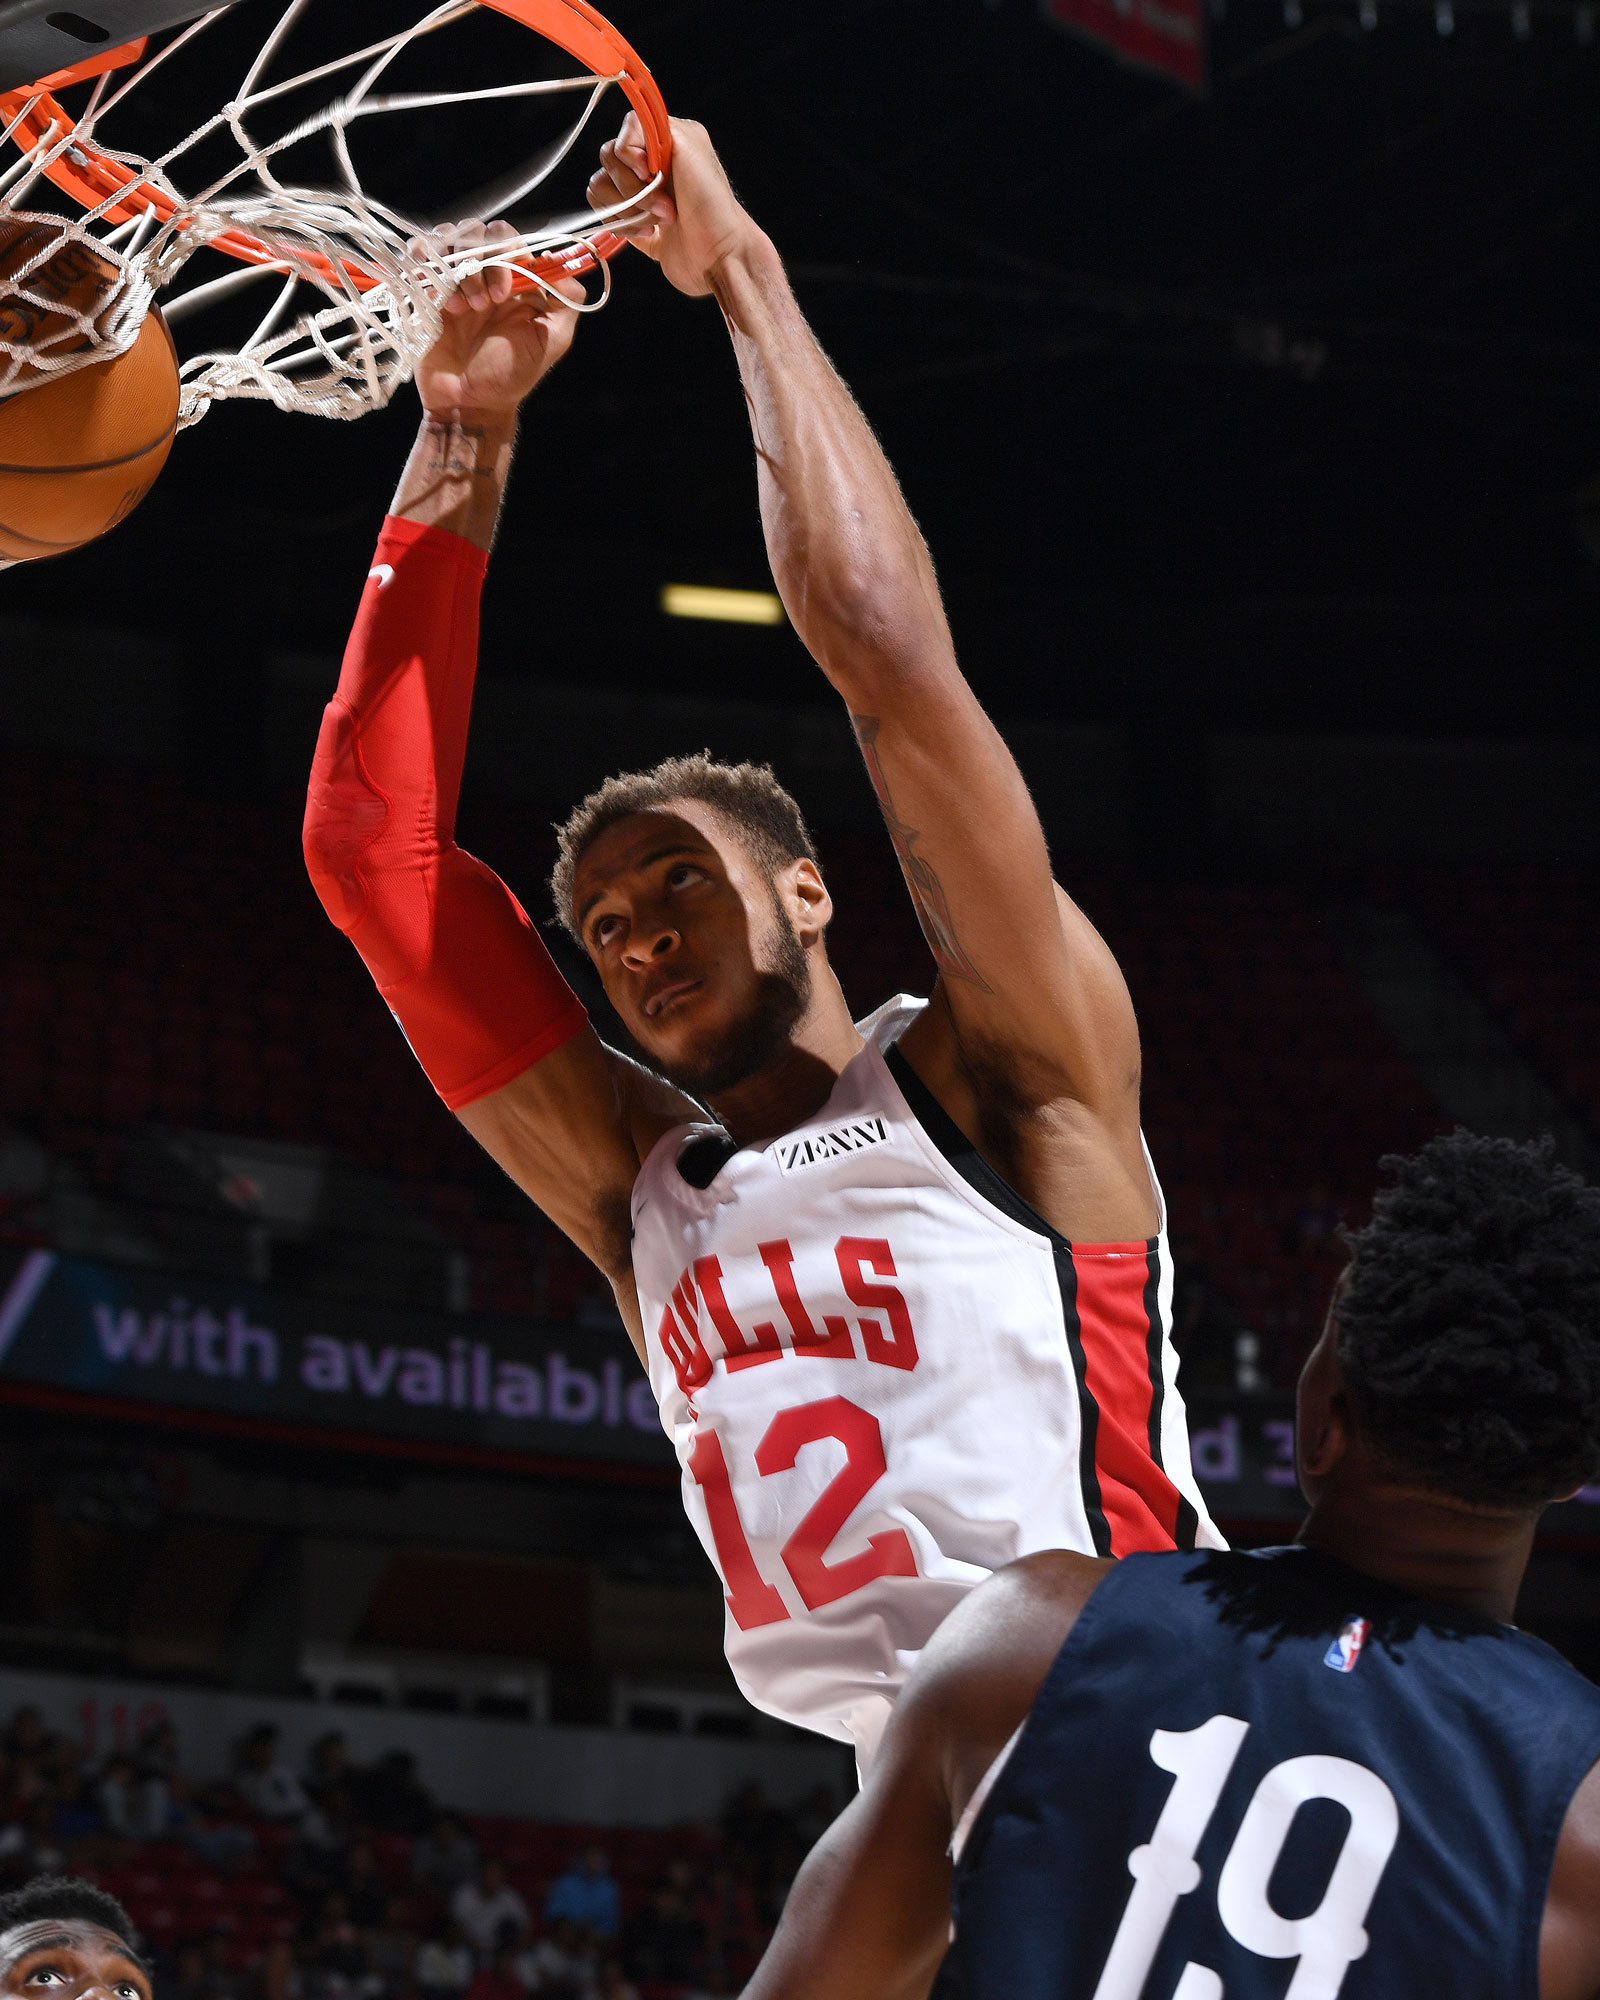 Daniel Gafford #12 of the Chicago Bulls dunks the ball against the New Orleans Pelicans on July 8, 2019 at the Thomas & Mack Center in Las Vegas, Nevada.